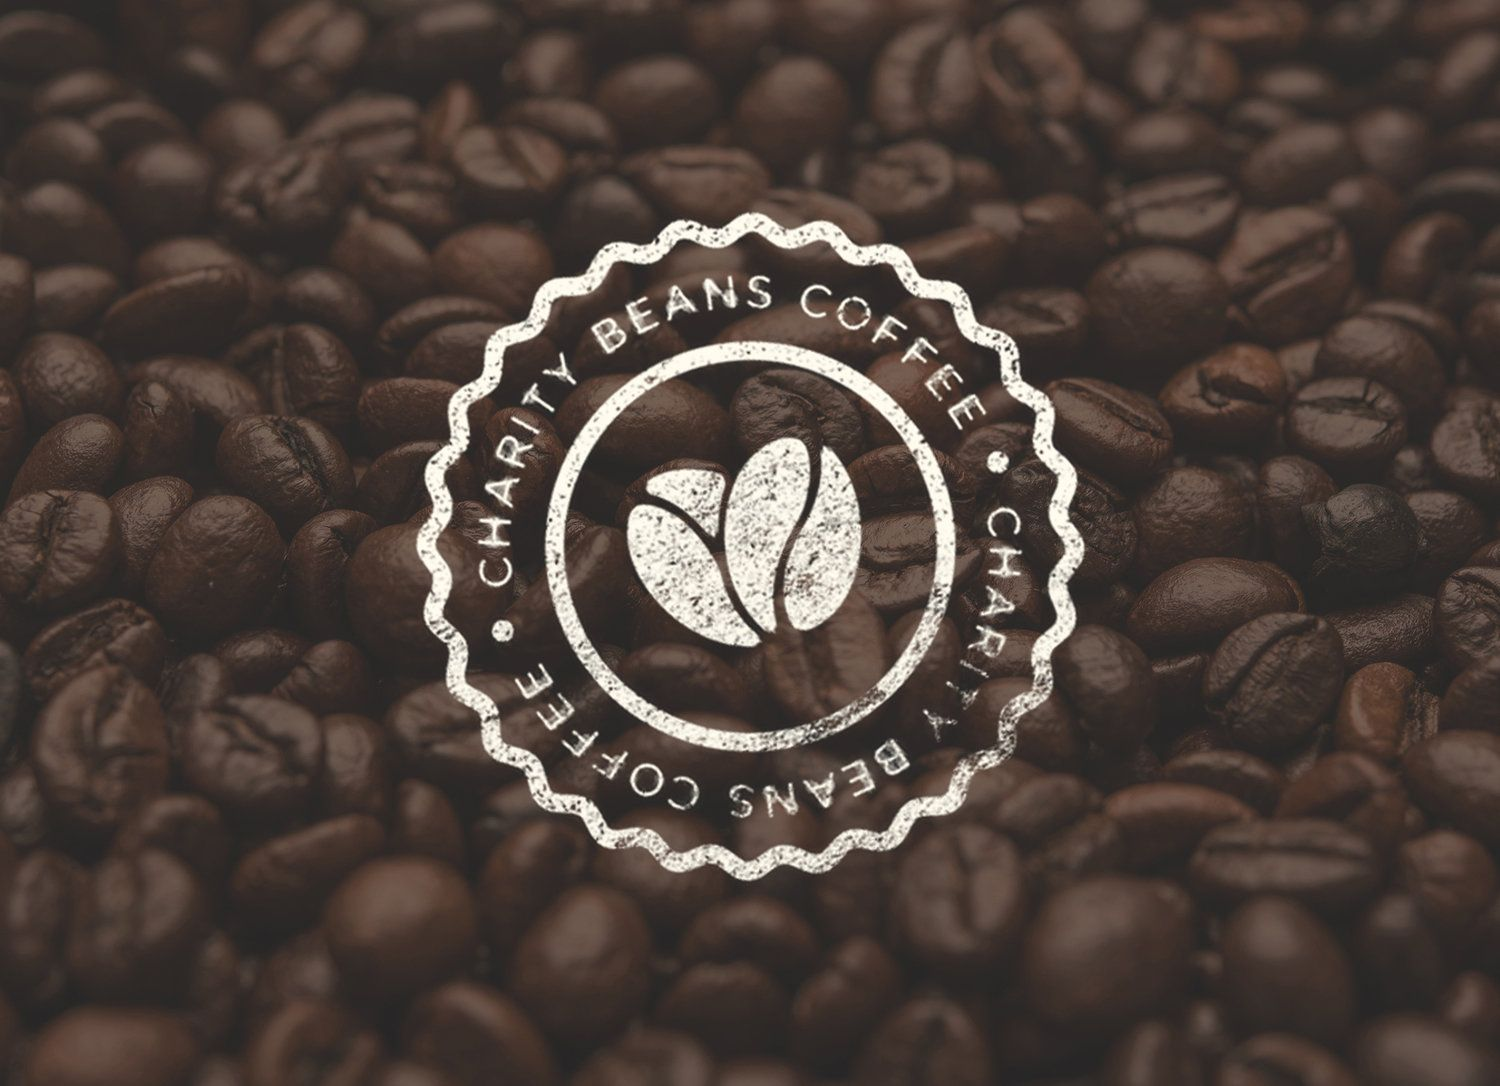 Charity Beans Coffee Coffee beans, Coffee logo, Coffee